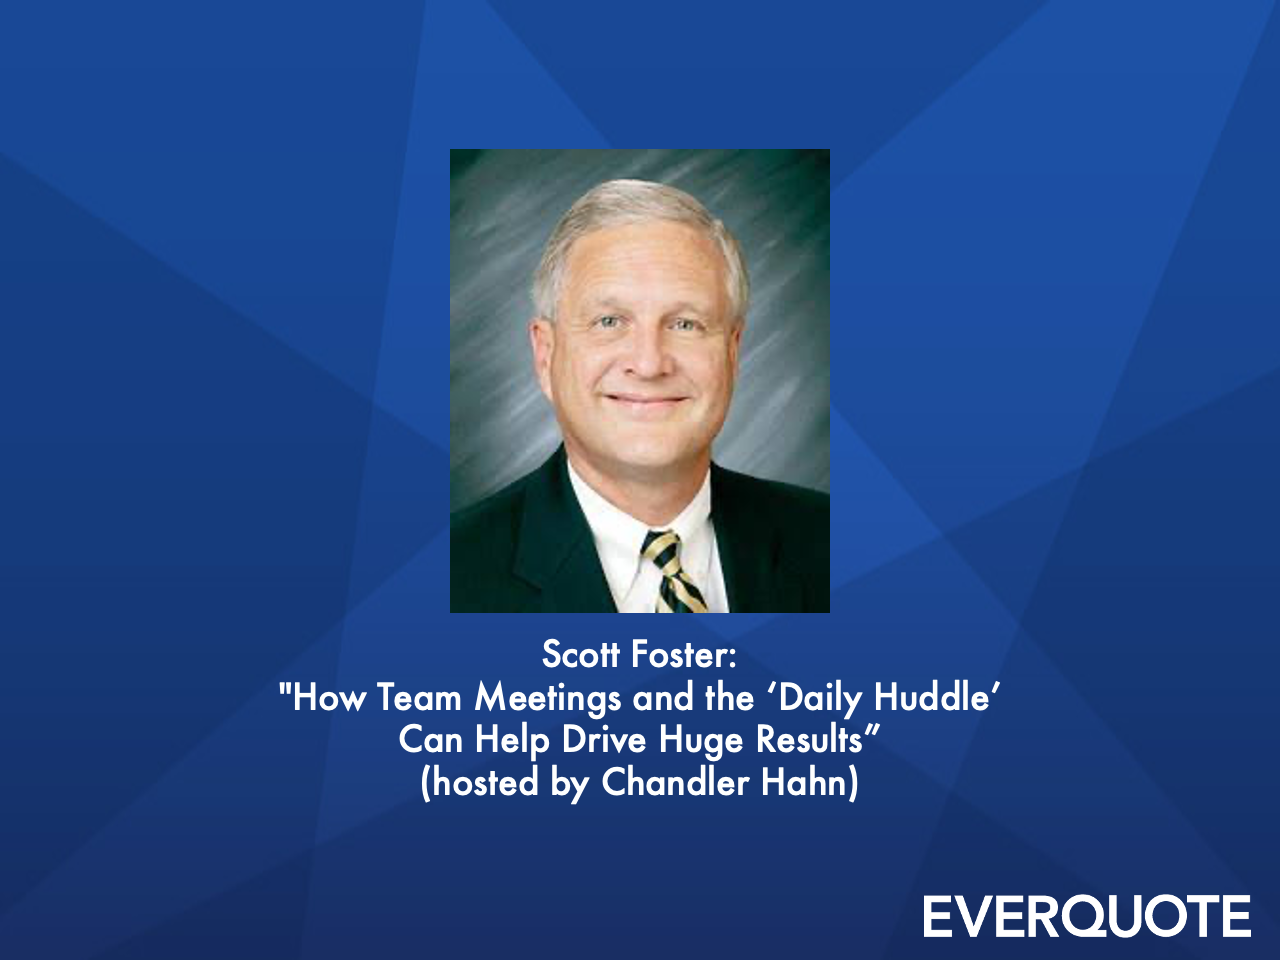 How Team Meetings and the 'Daily Huddle' Can Help Drive Huge Results with Scott Foster